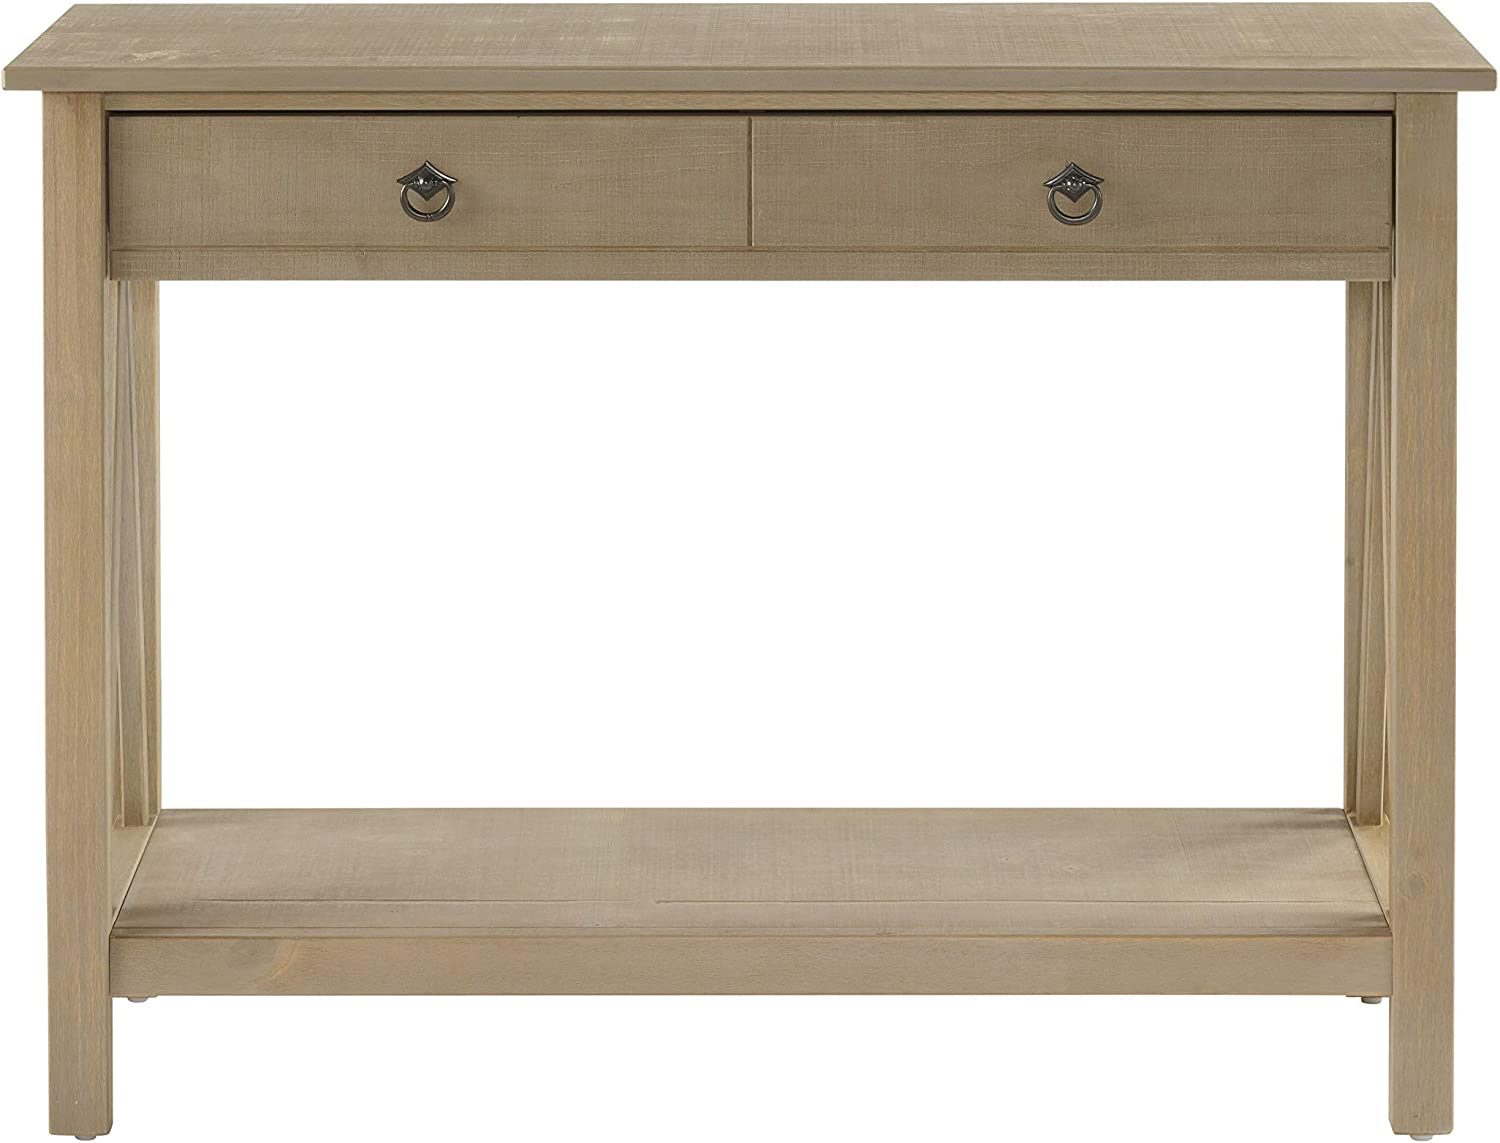 Linon Titian Rustic Gray Console Table, 42 W x 13.98 D X 30.7 H, Driftwood